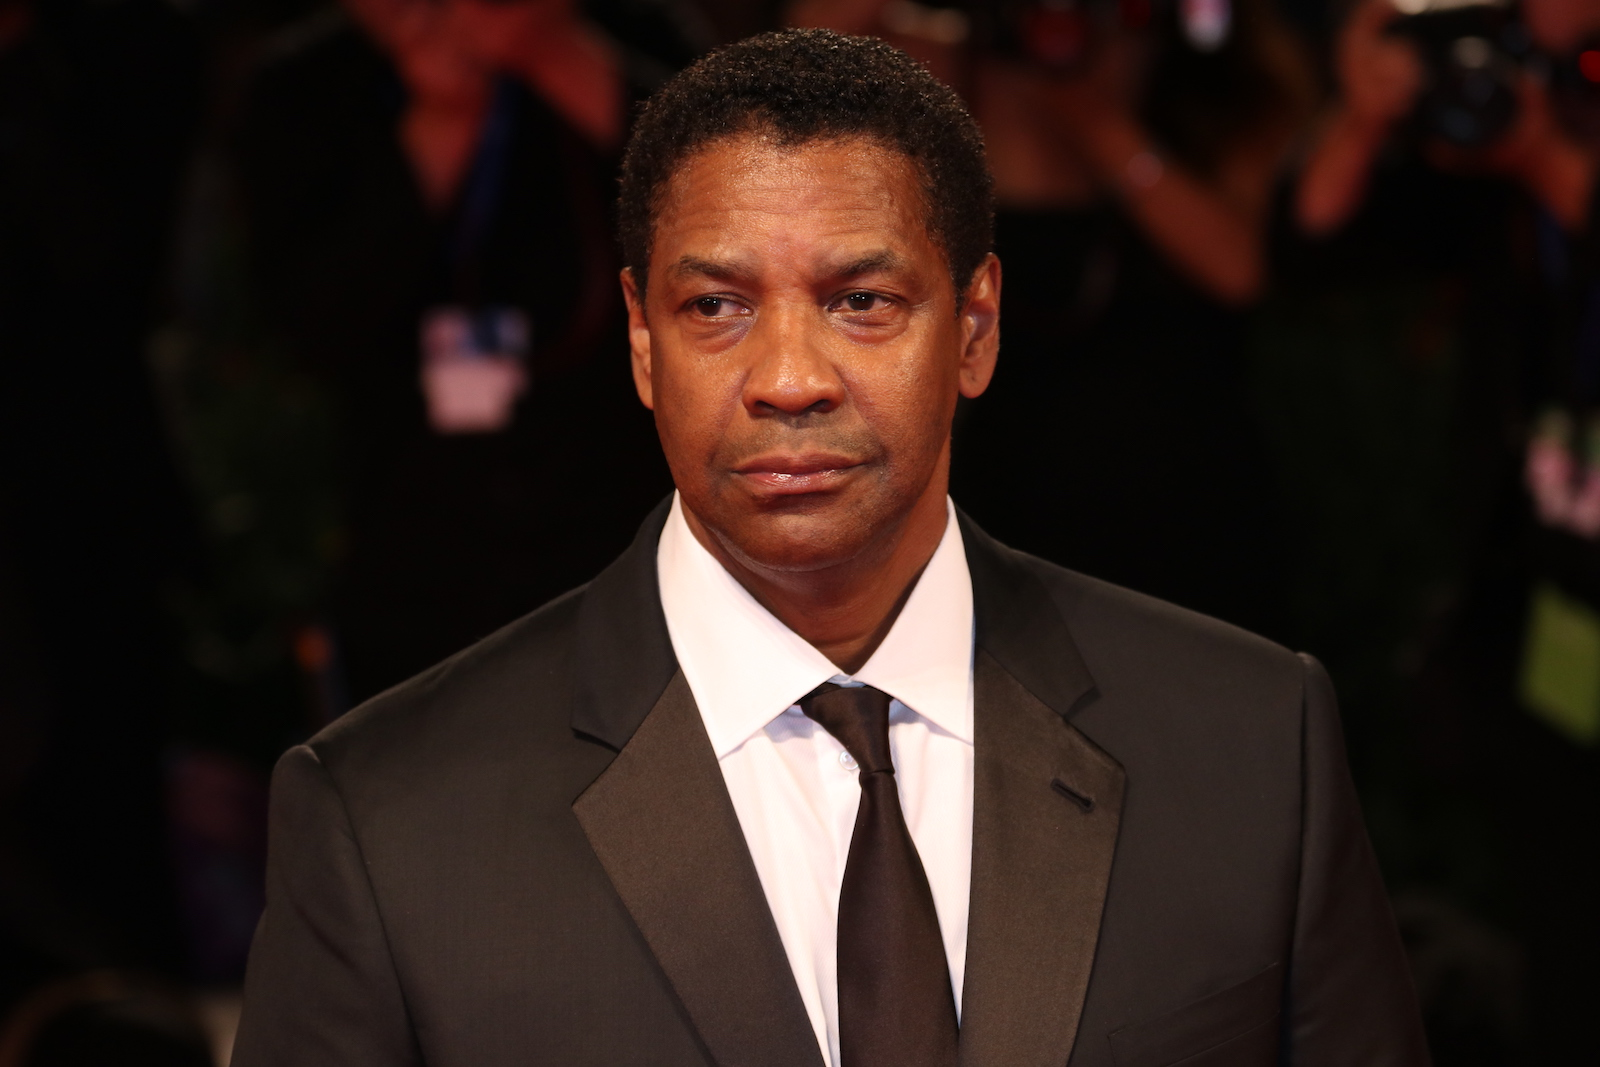 Venezia 2016: una foto di Denzel Washington sul red carpet de I magnigici 7